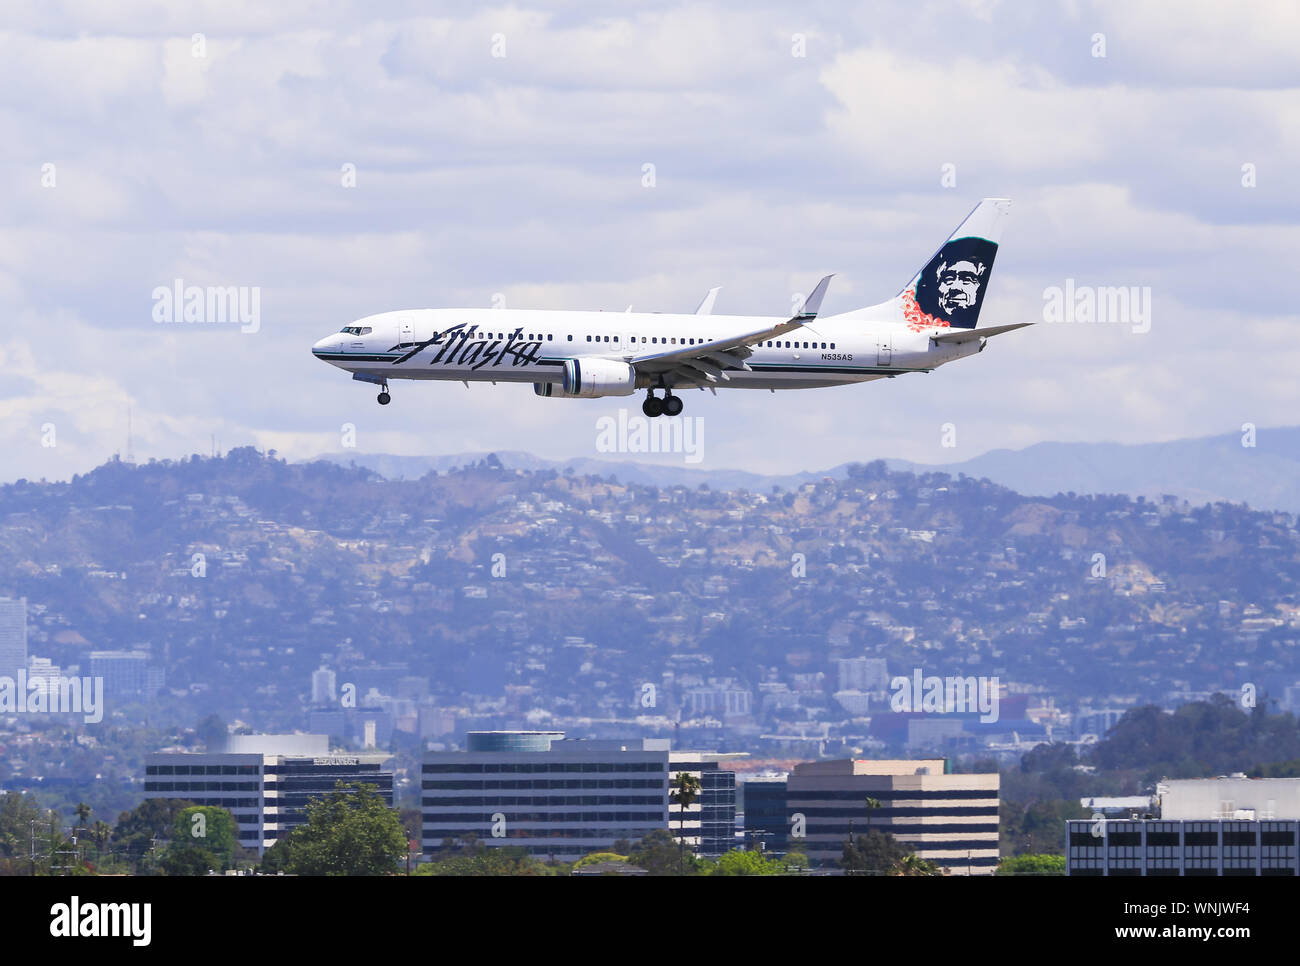 Los Angeles, California, USA - May 22, 2019: A Alaska Airlines Boeing 737 lands at the Los Angeles International Airport (LAX). Stock Photo